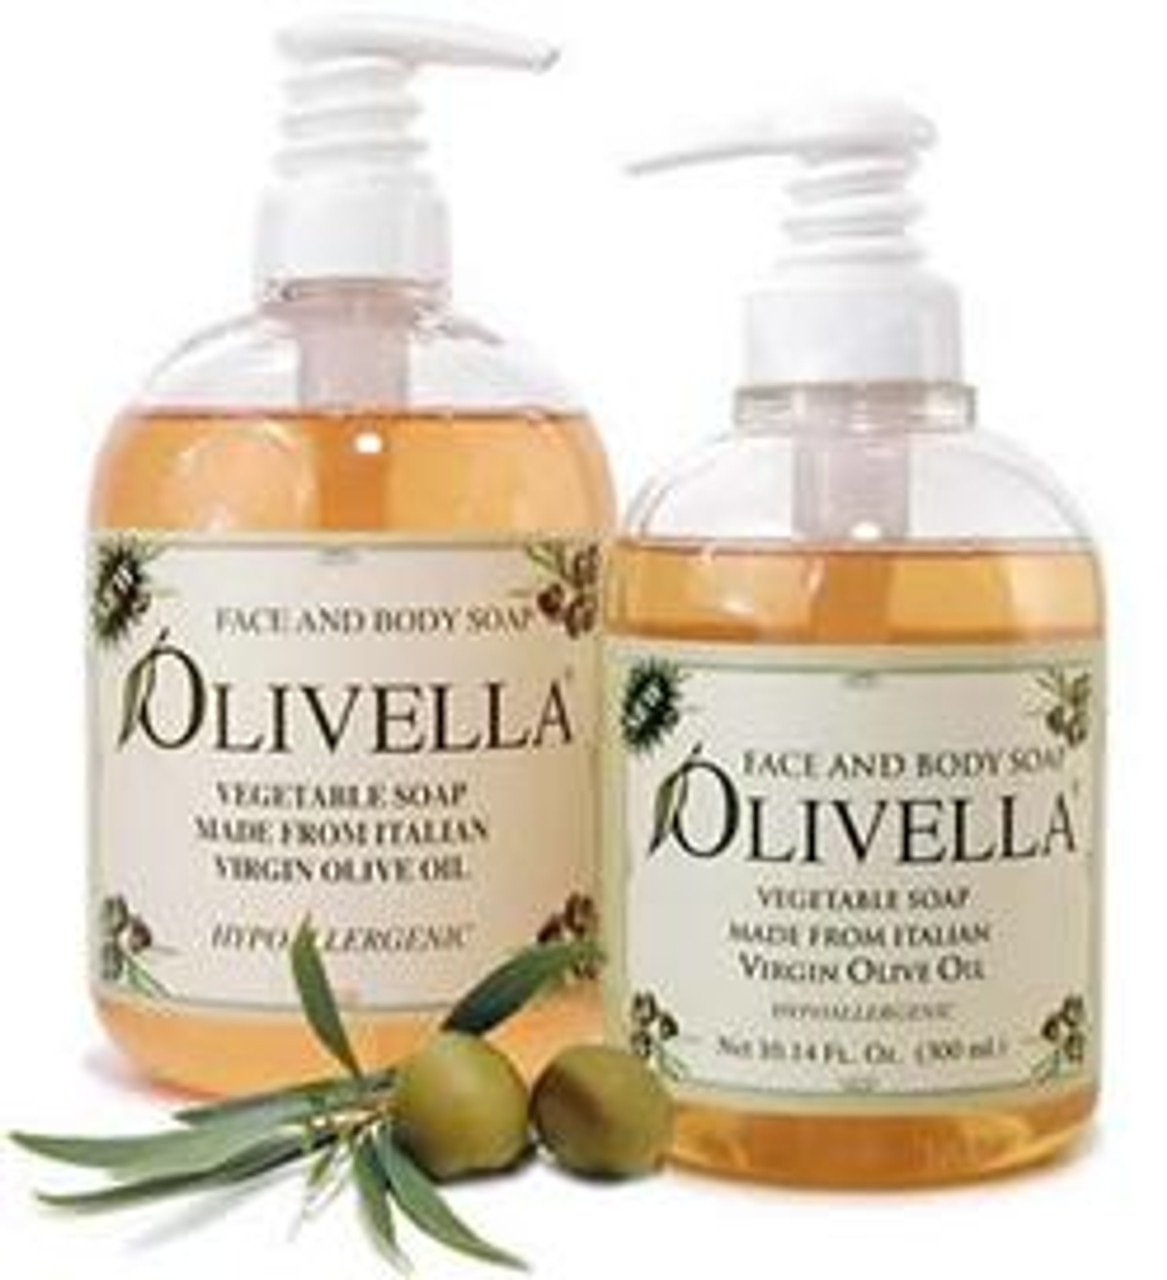 Olivella Olive Oil Soap